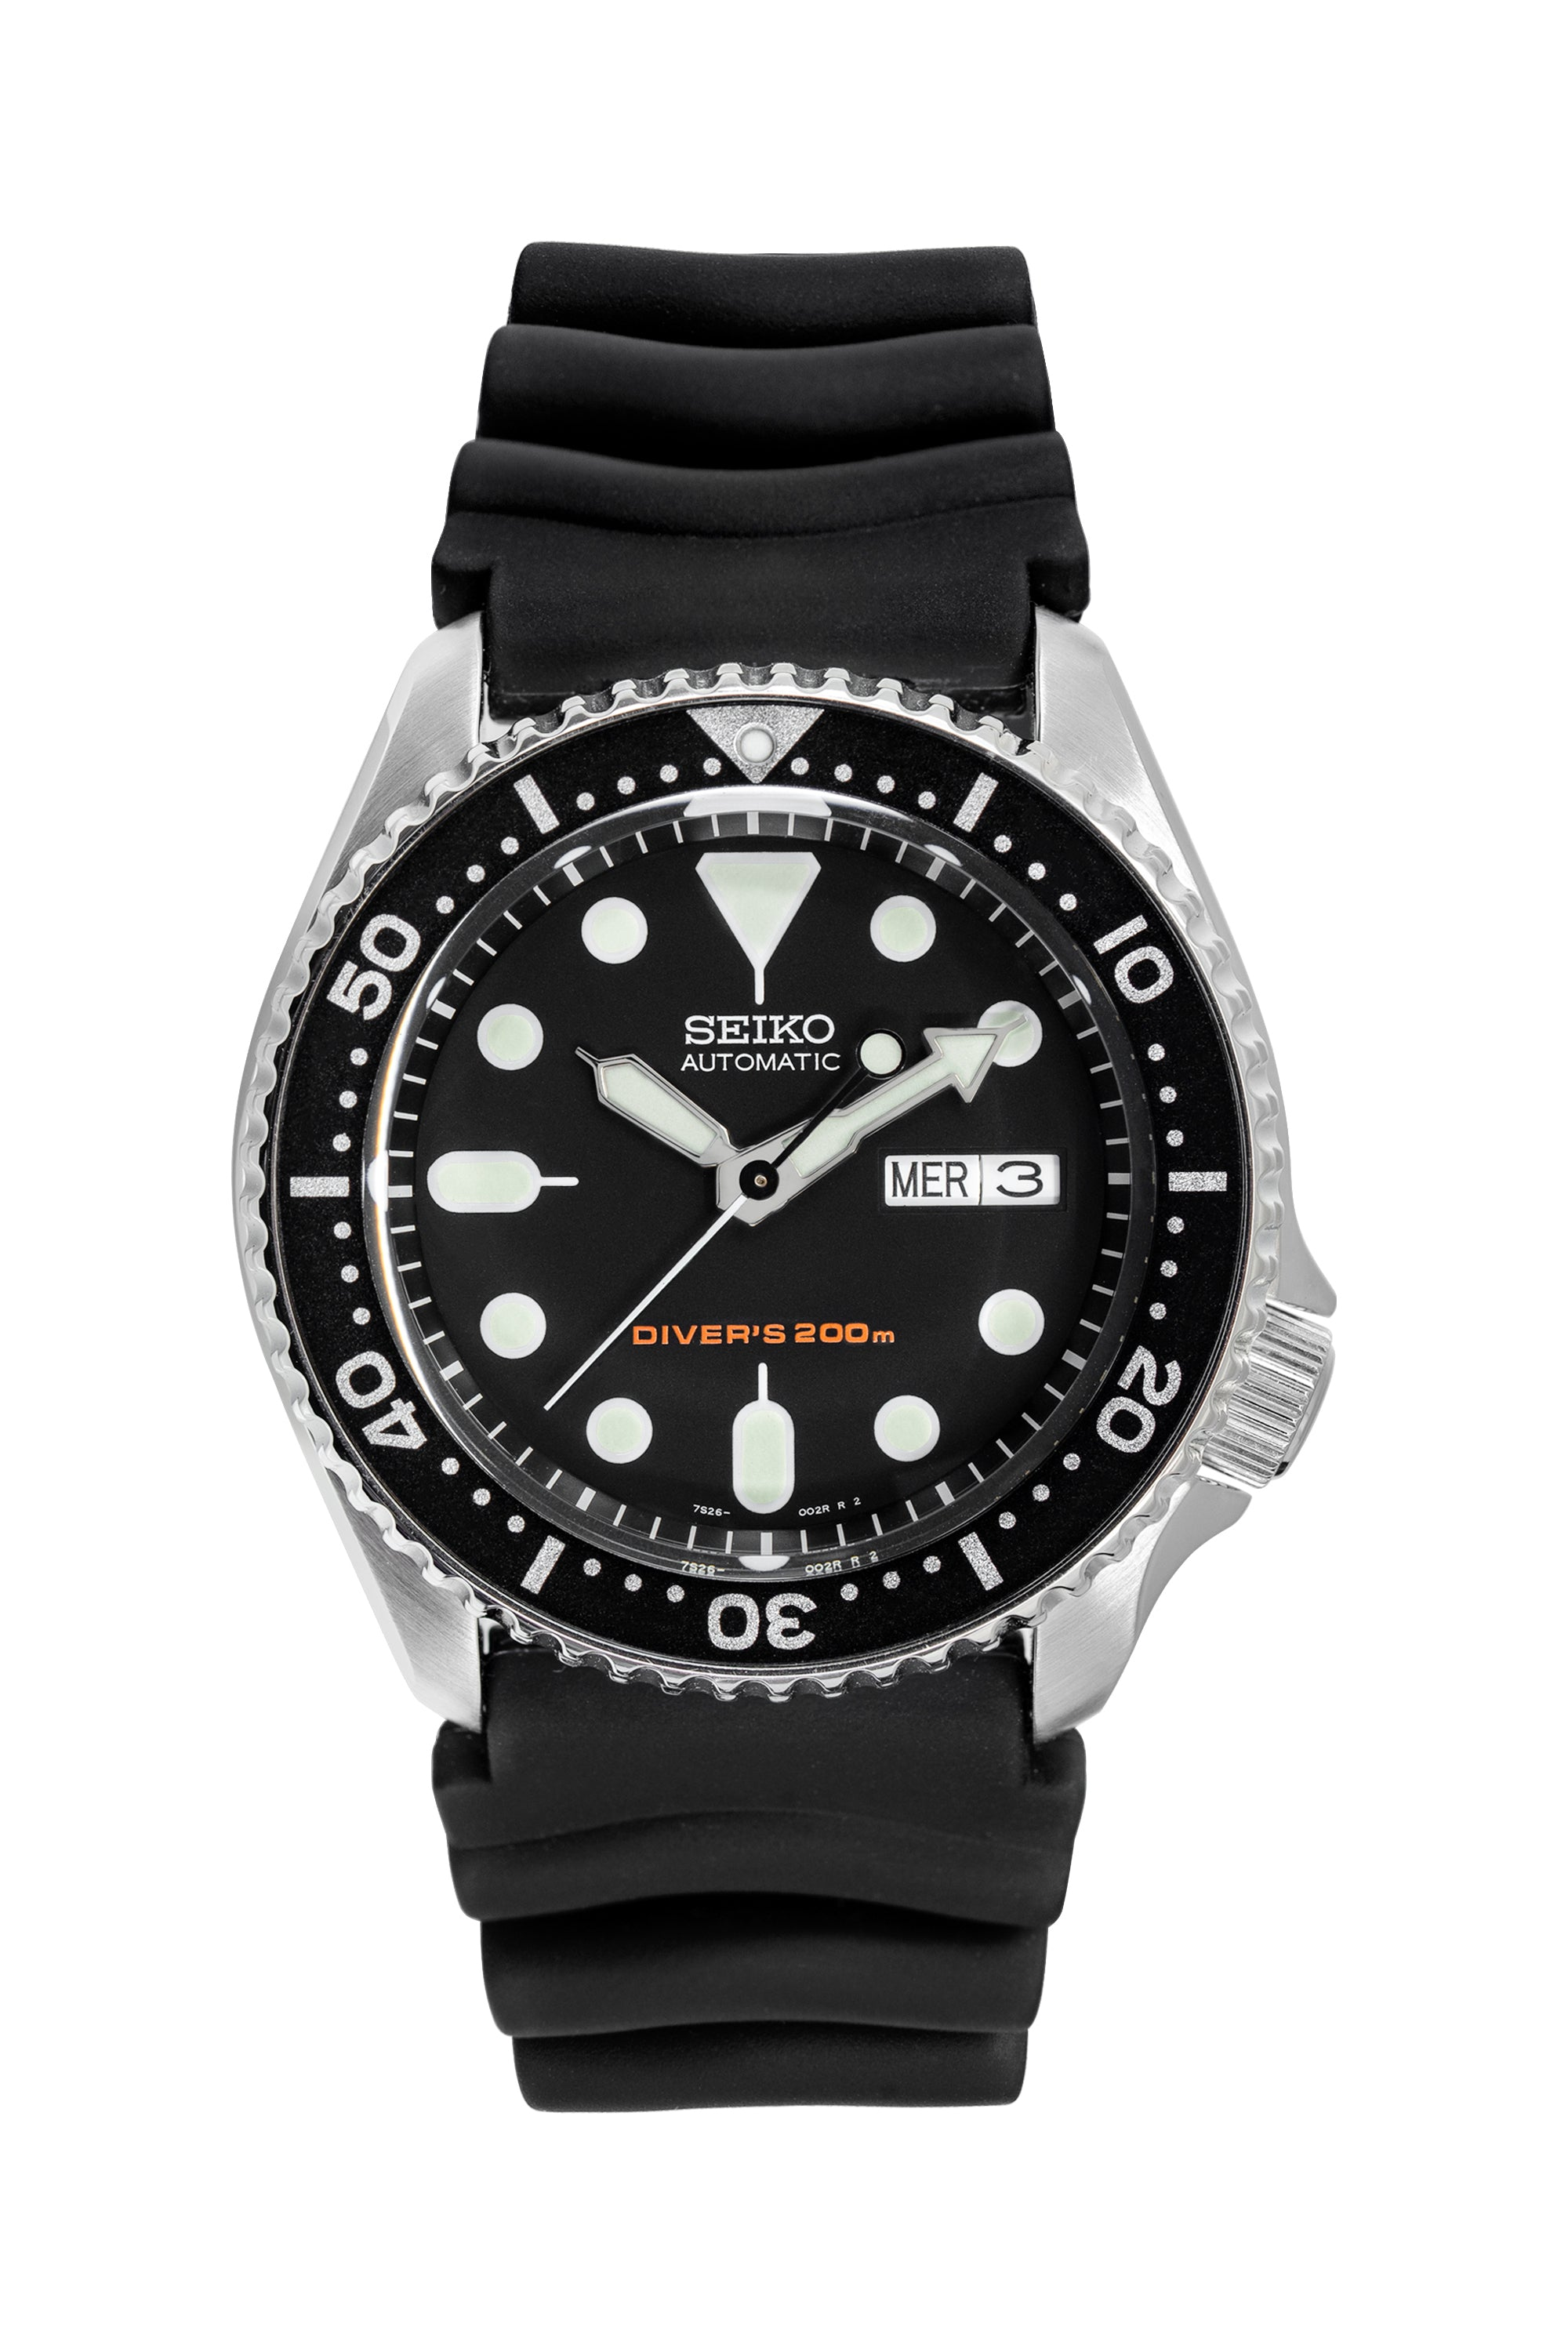 SEIKO SKX Series Automatic Men's 42mm Diver Watch - SKX007K1 – Black Dial